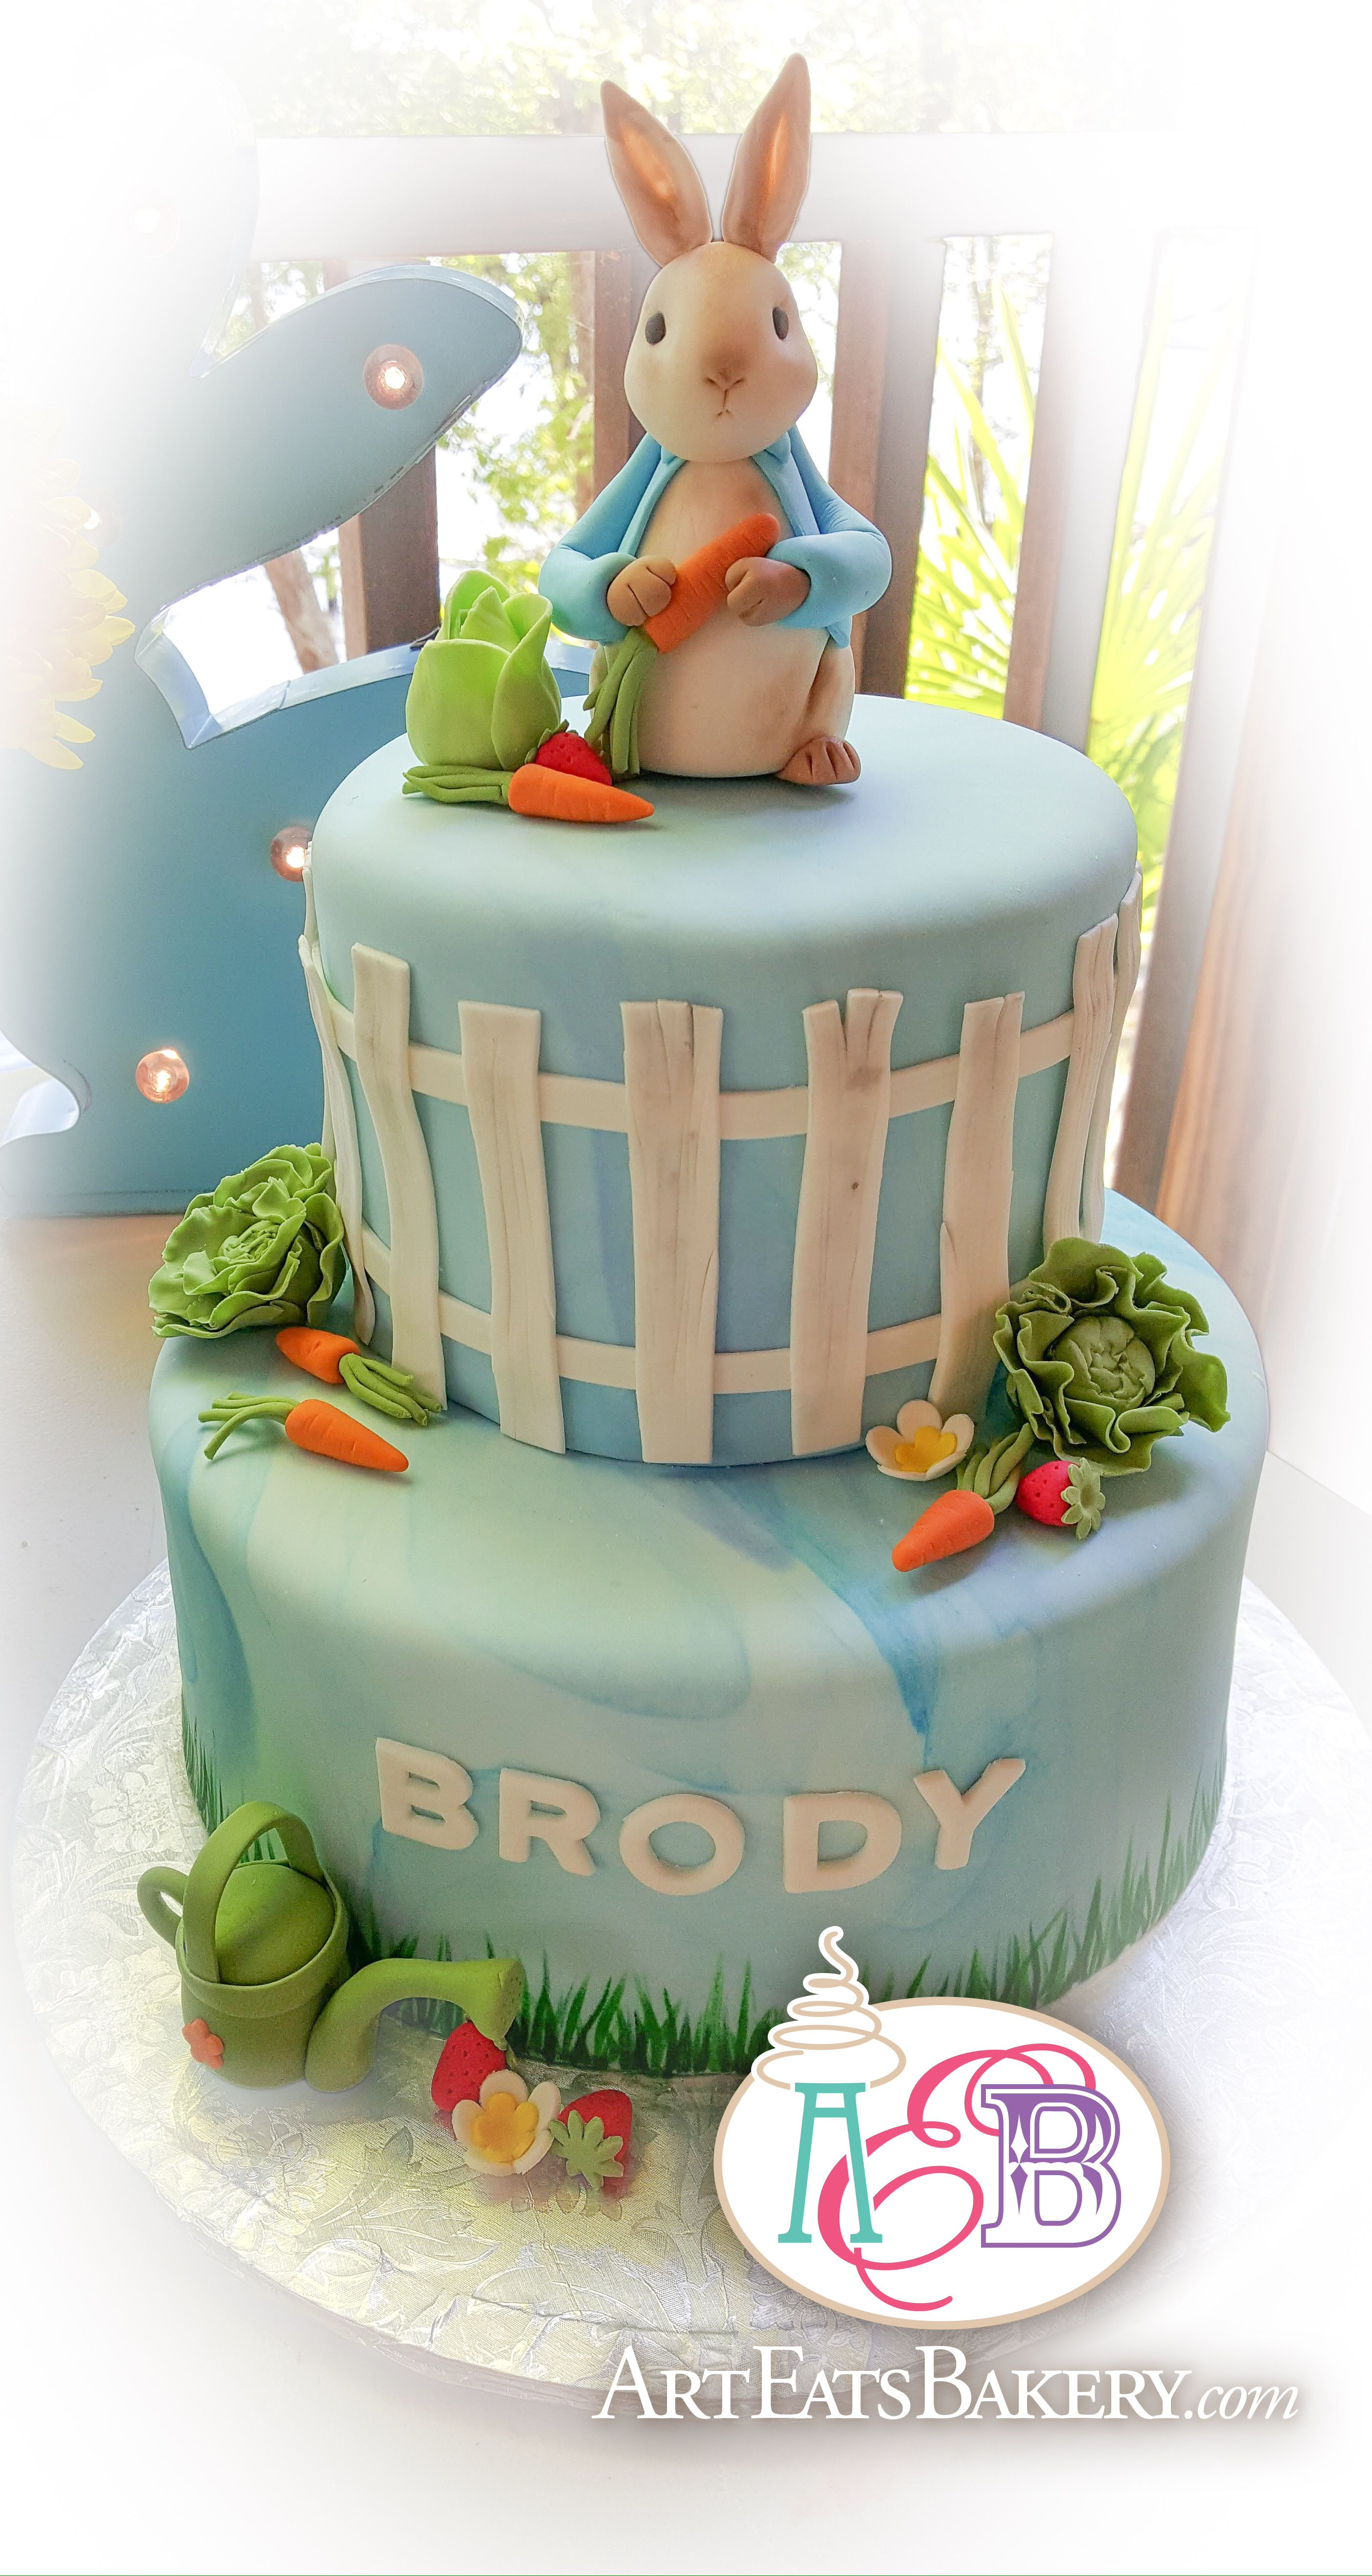 Surprising Peter Rabbit 1St Birthday Cake From Art Eats Bakery With Funny Birthday Cards Online Alyptdamsfinfo